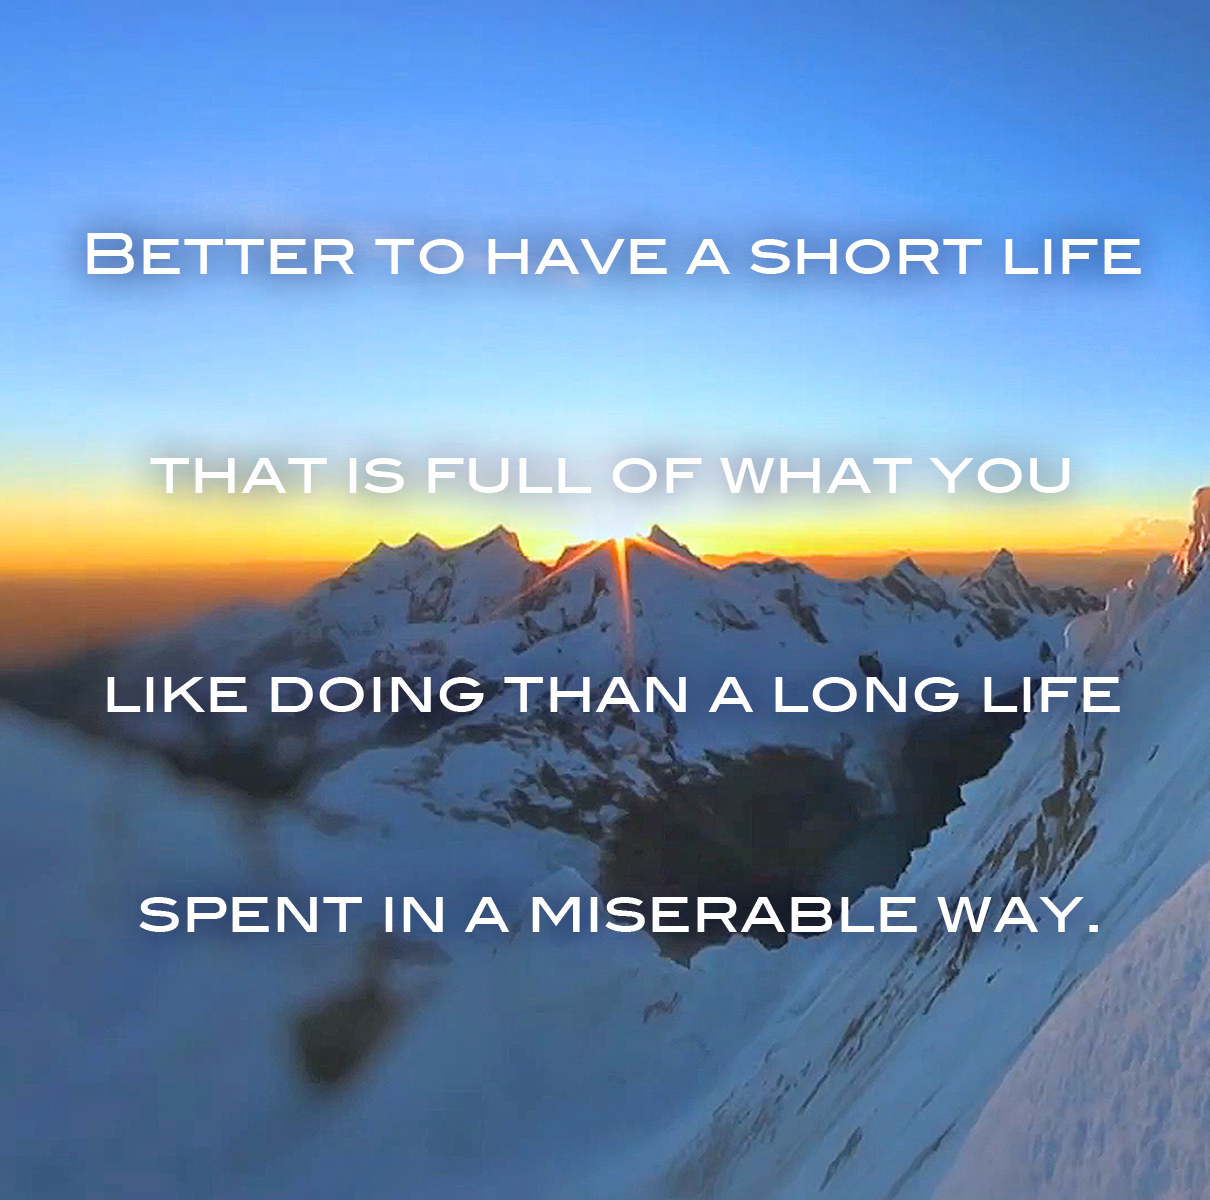 How to live this short life to the full